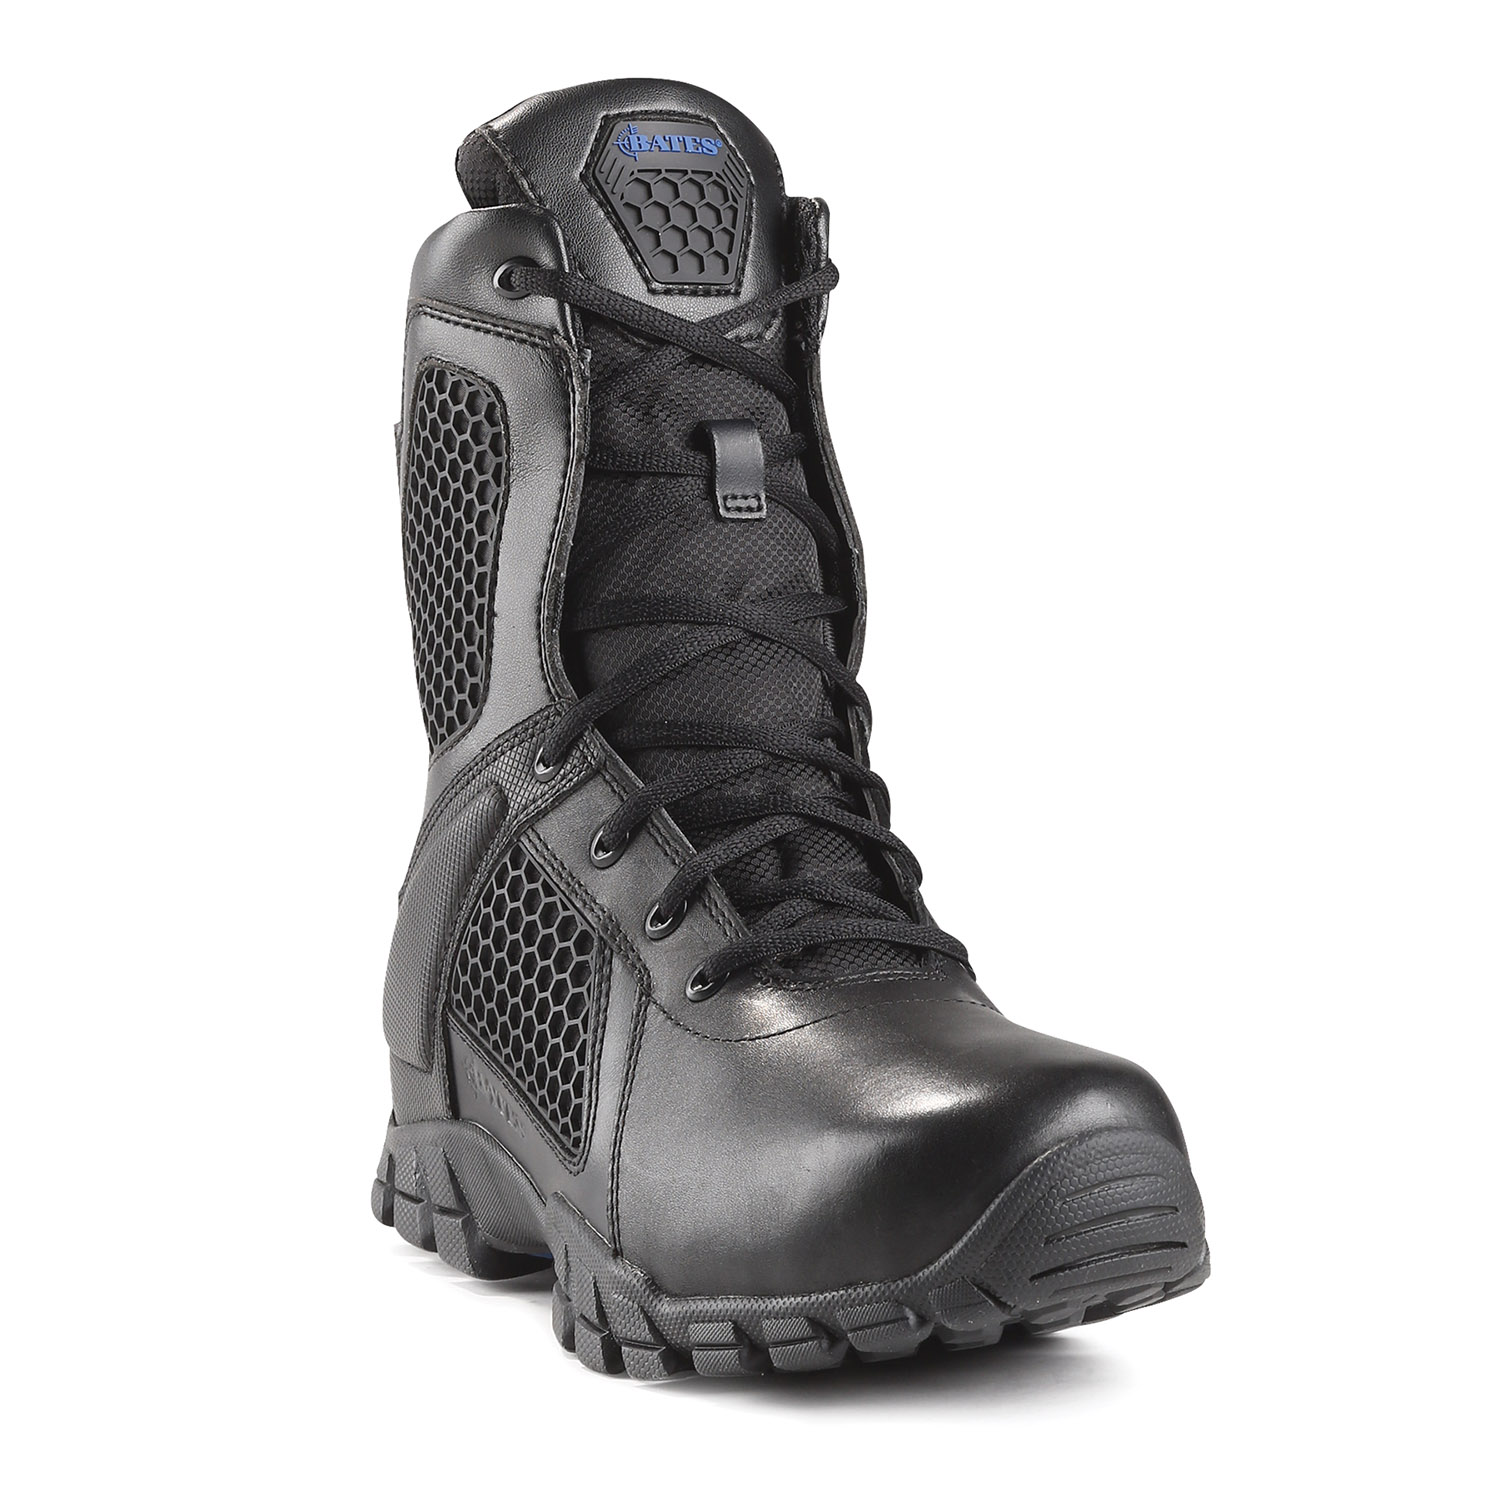 "Bates 8"" Shock Zipper Waterproof Boot"